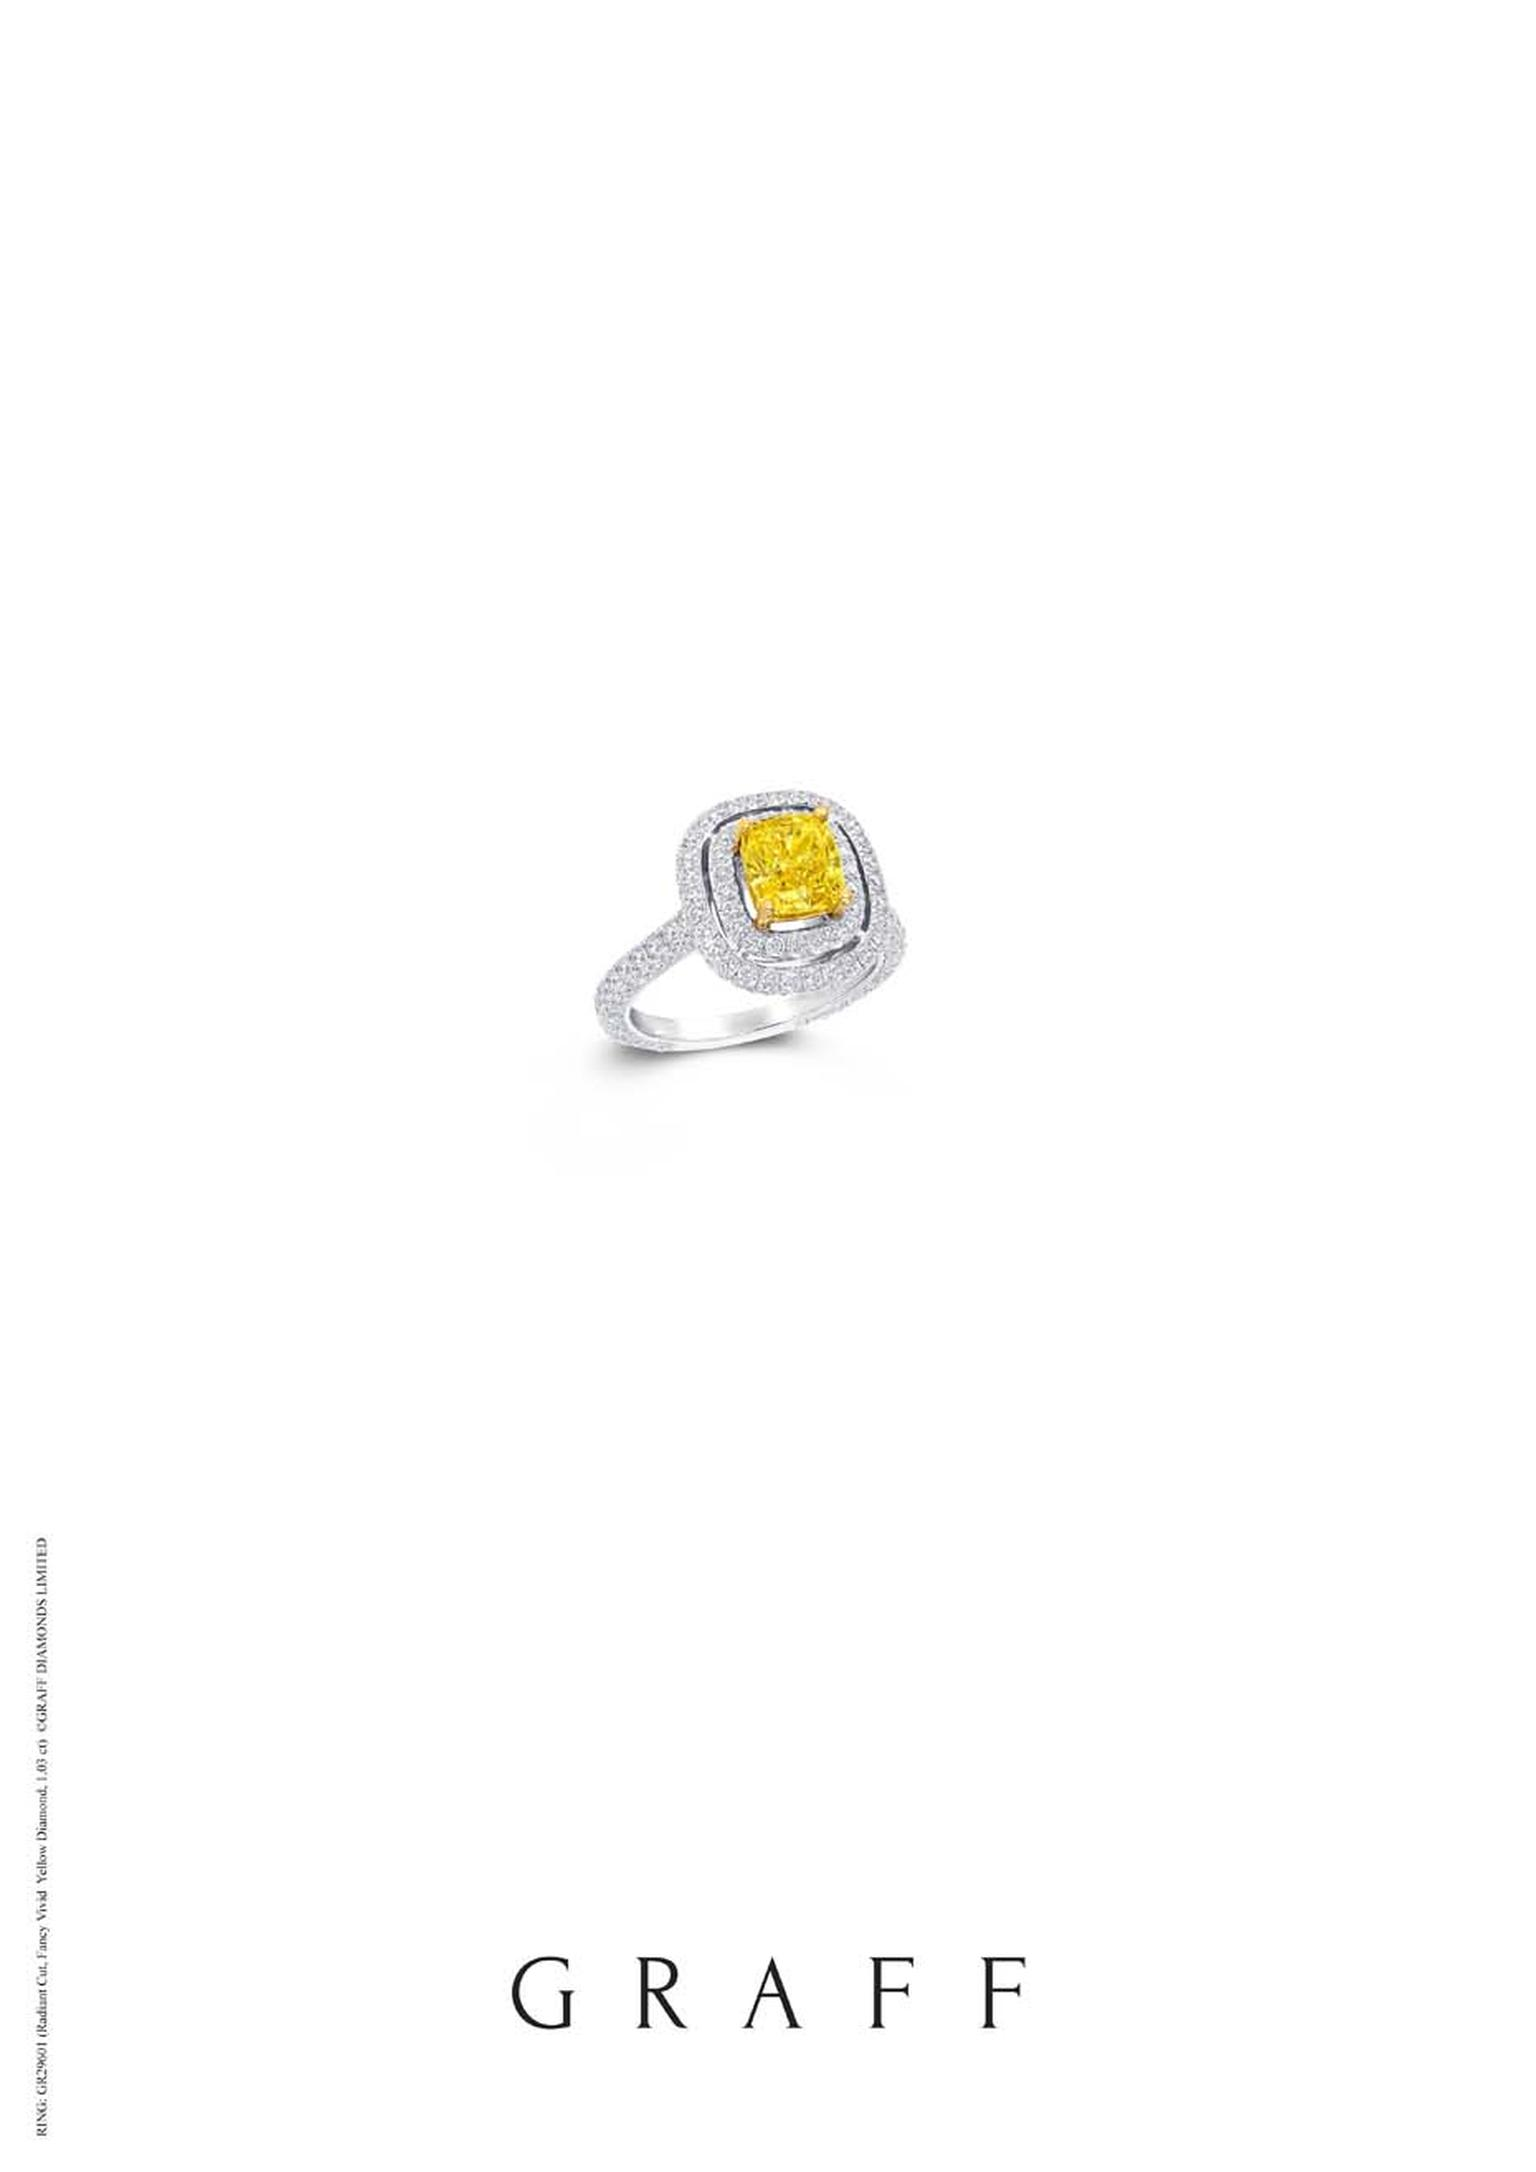 YellowDiamondRings007.jpg